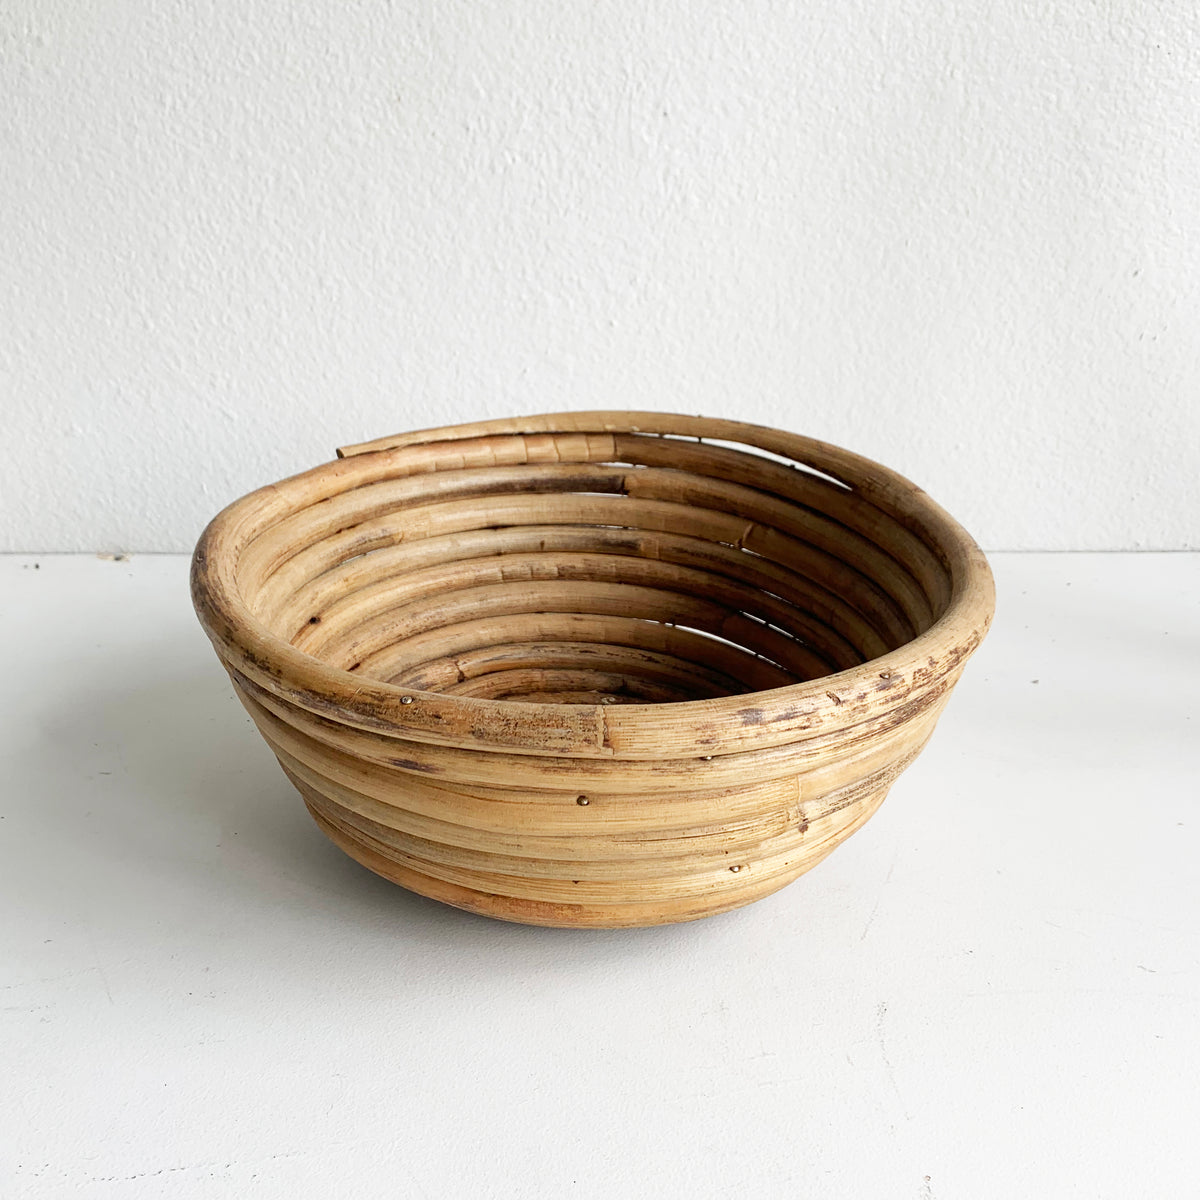 Coiled Vintage Bamboo Basket